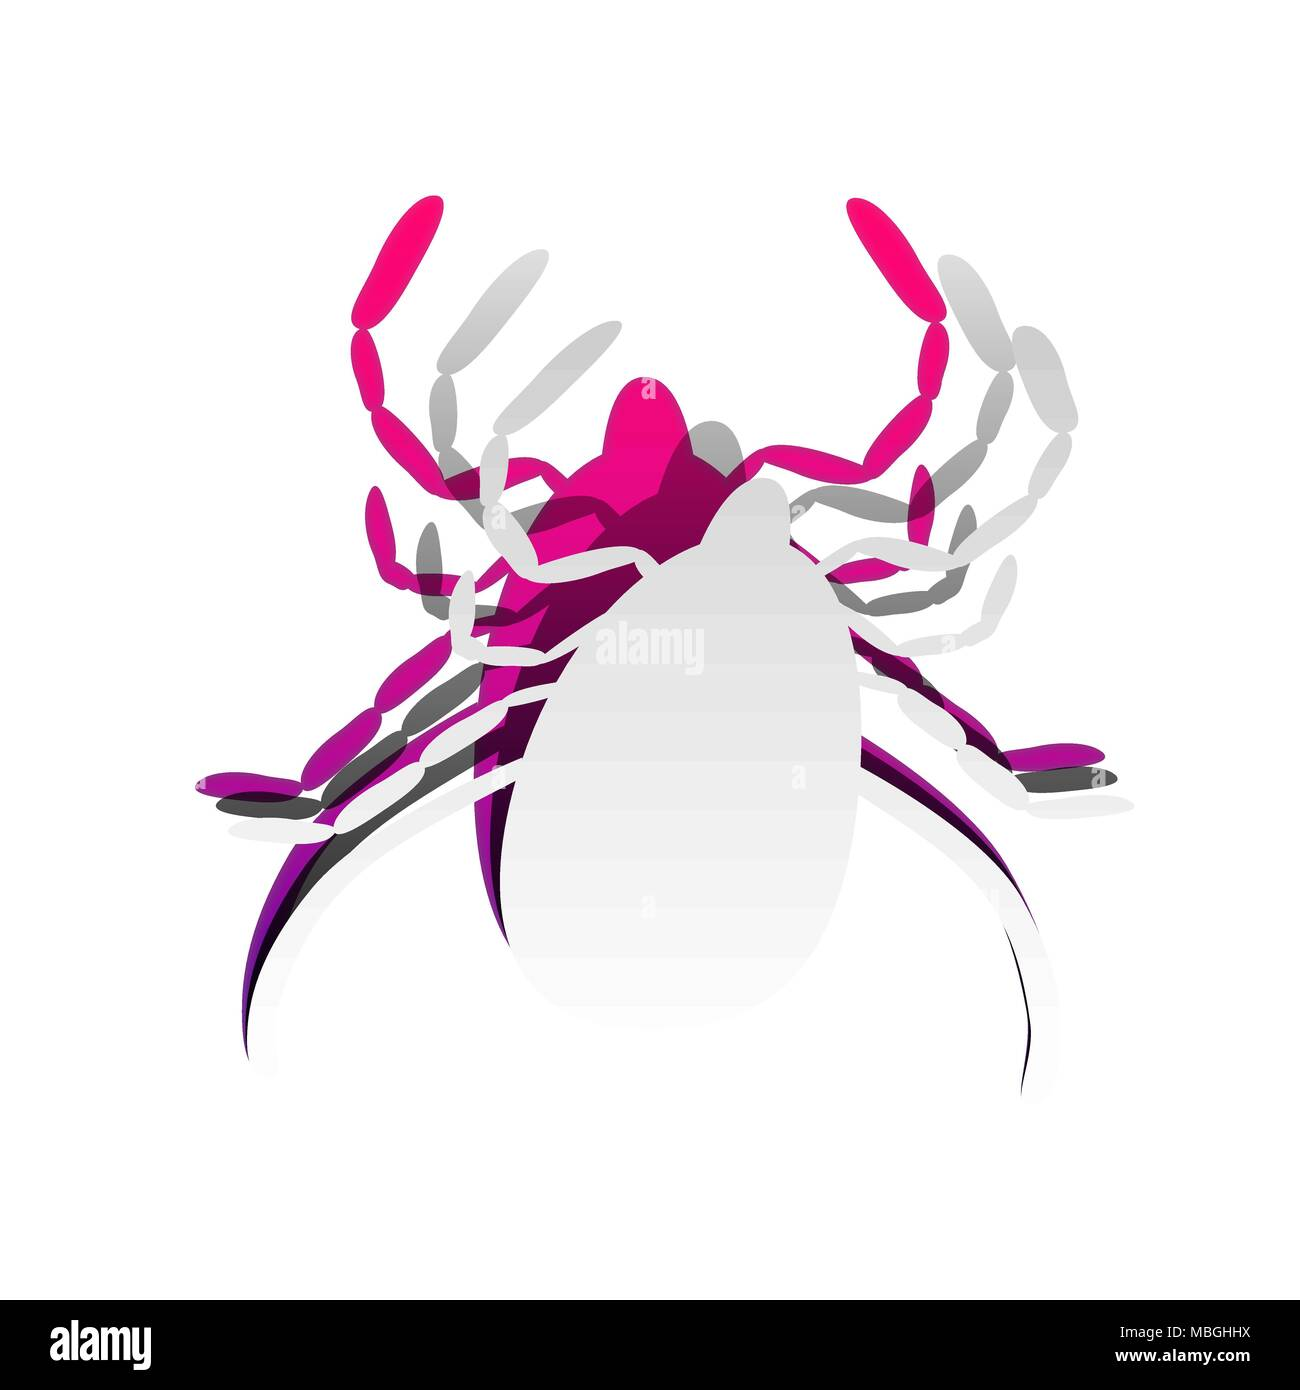 Dust mite sign illustration. Vector. Detachable paper with shadow at underlying layer with magenta-violet background. - Stock Image